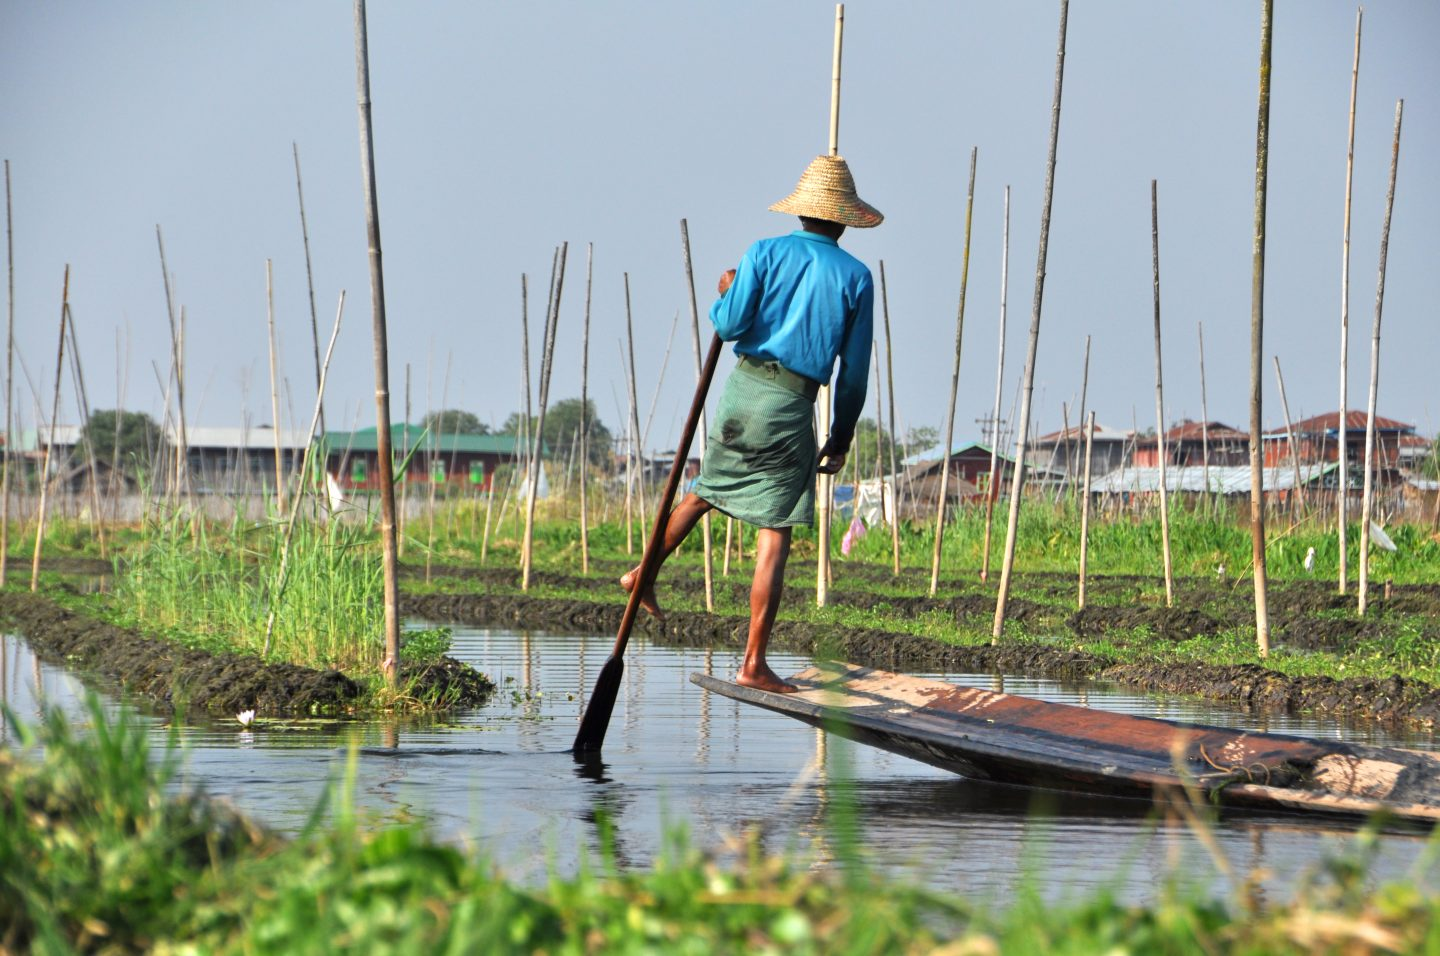 Day 14 A Boat Trip On Inle Lake